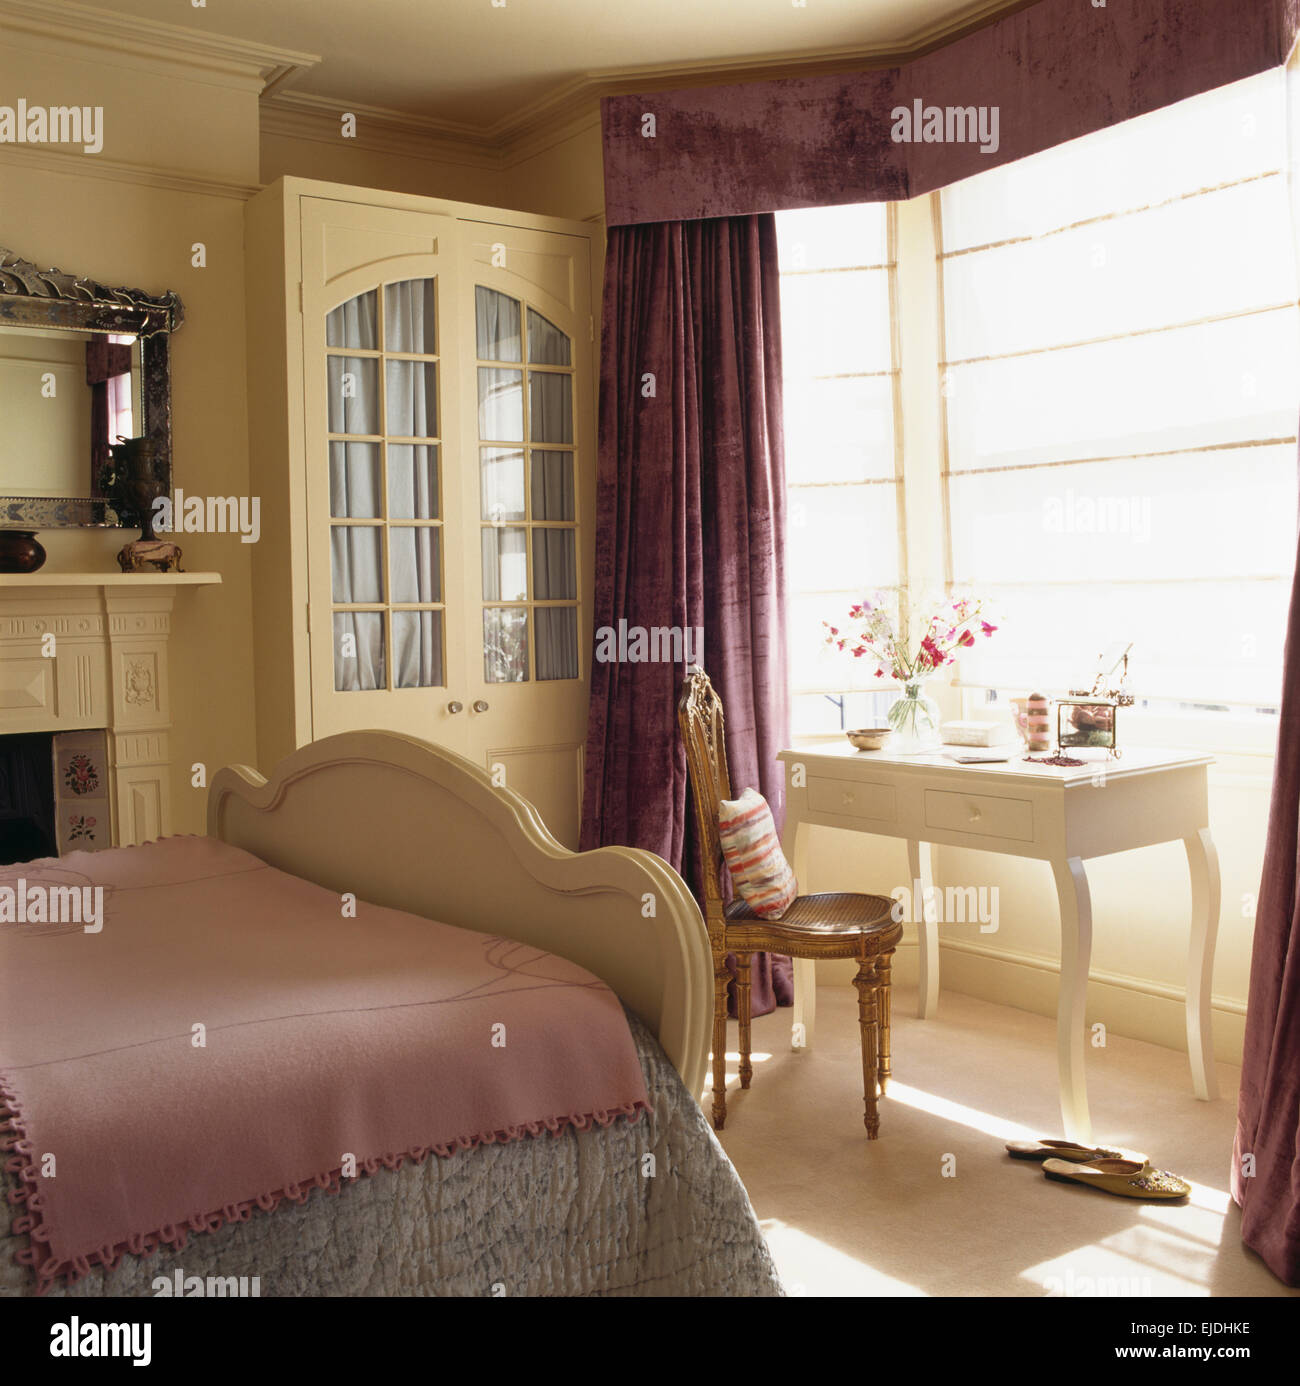 Bedroom ceiling drapes - Cream Fitted Wardrobe With Interior Drapes In Traditional Bedroom With Purple Curtains And Fine Linen Blinds